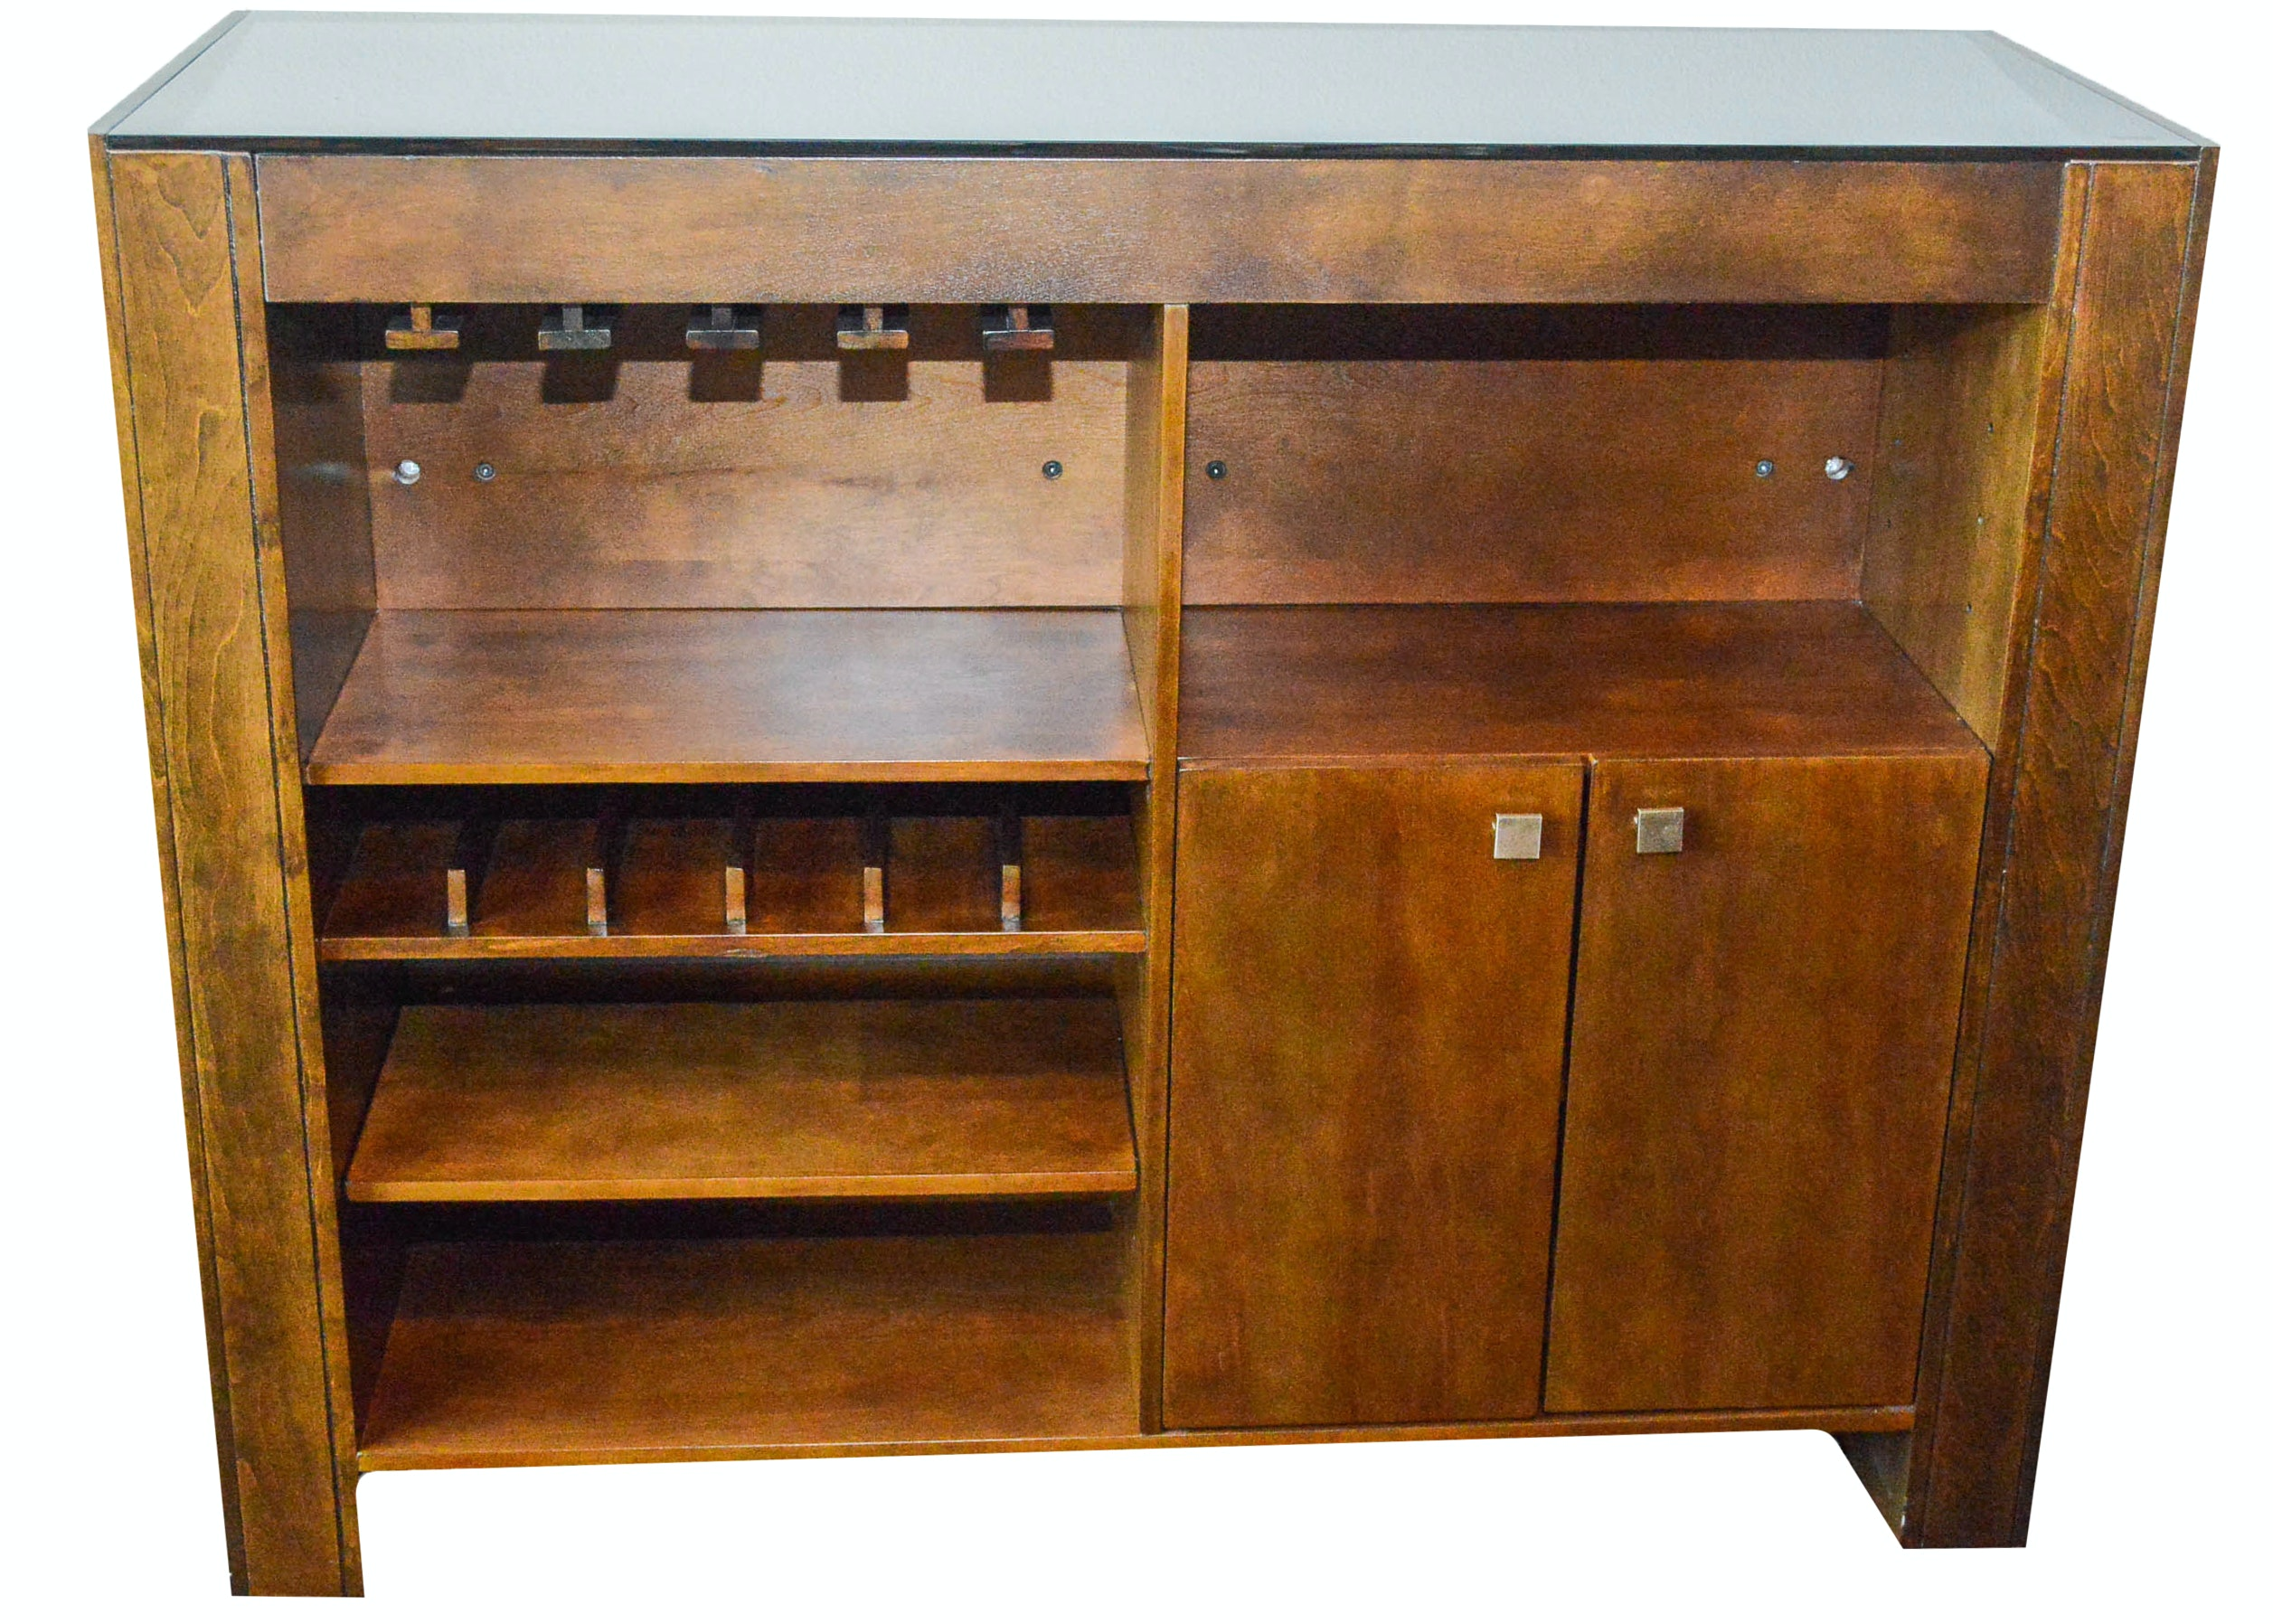 Model home furniture auctions in houston